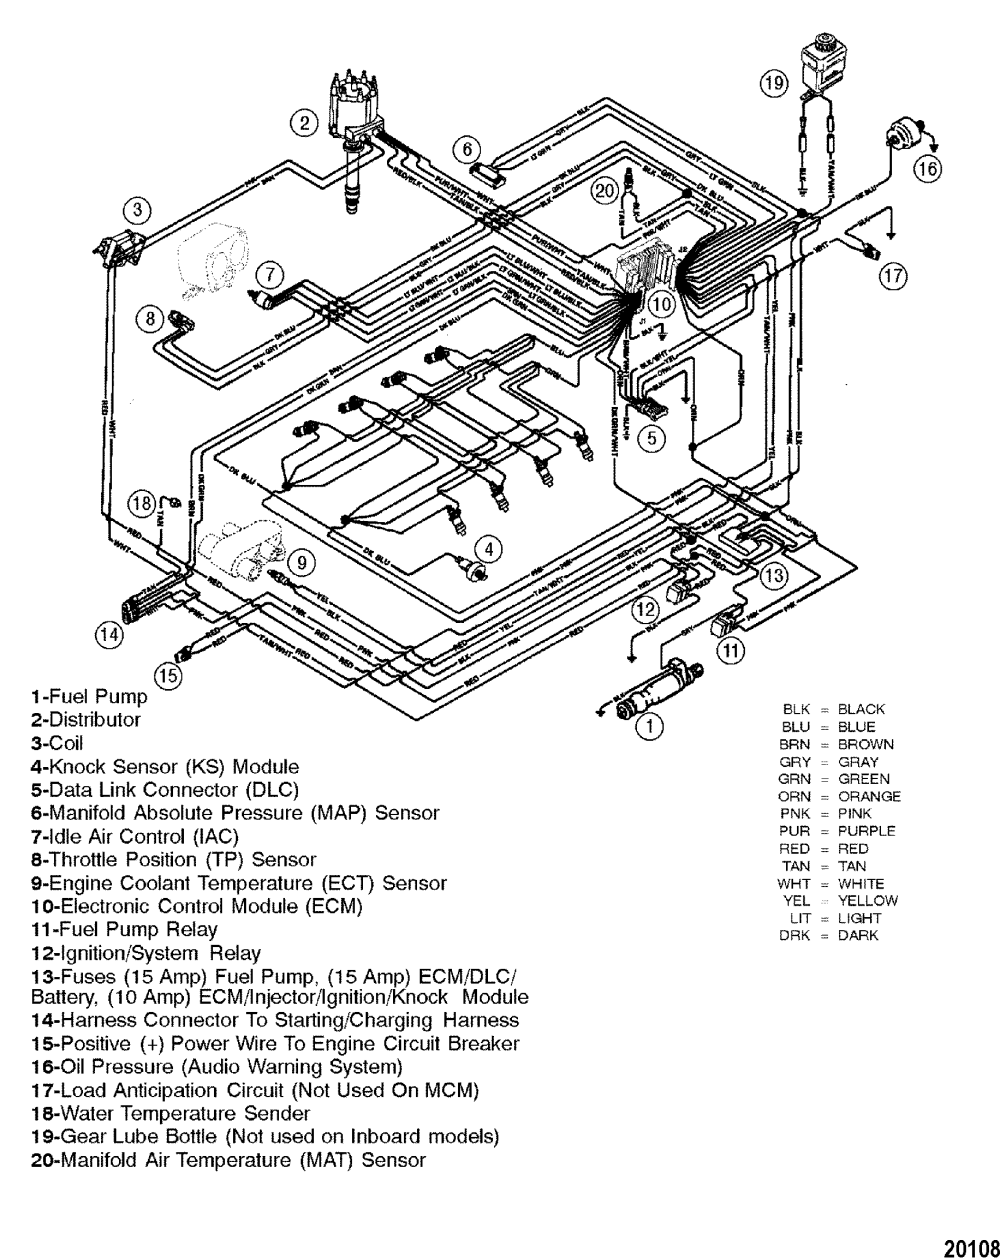 medium resolution of 5 7 mercruiser engine wiring diagram wiring diagram inside mercruiser 5 7 engine parts diagram mercruiser 5